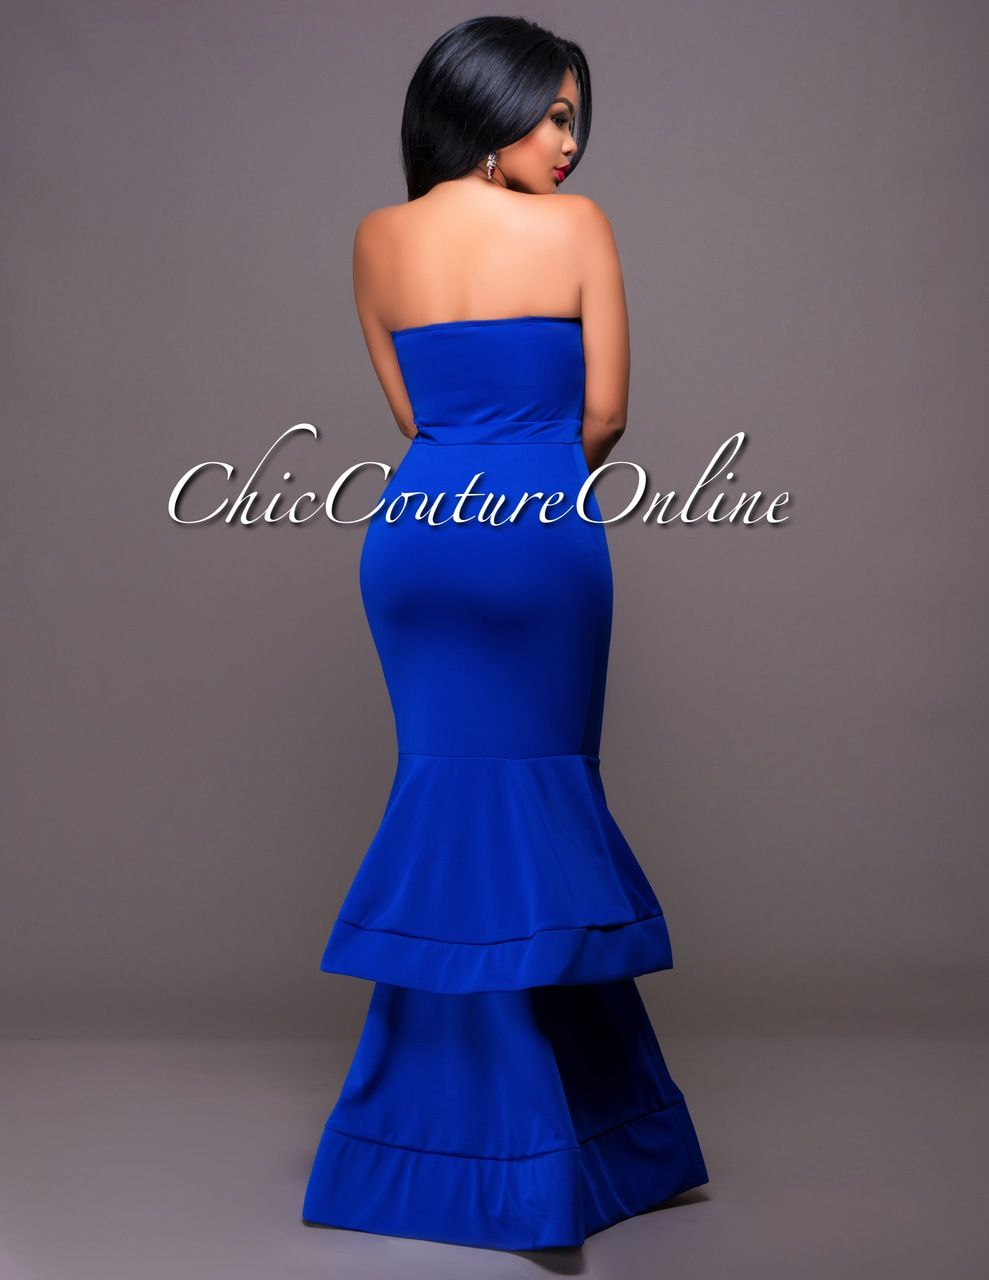 Chic Couture Online - Florence Royal-Blue Strapless Tier Padded Ponti Gown.(http://www.chiccoutureonline.com/florence-royal-blue-strapless-tier-padded-ponti-gown/)